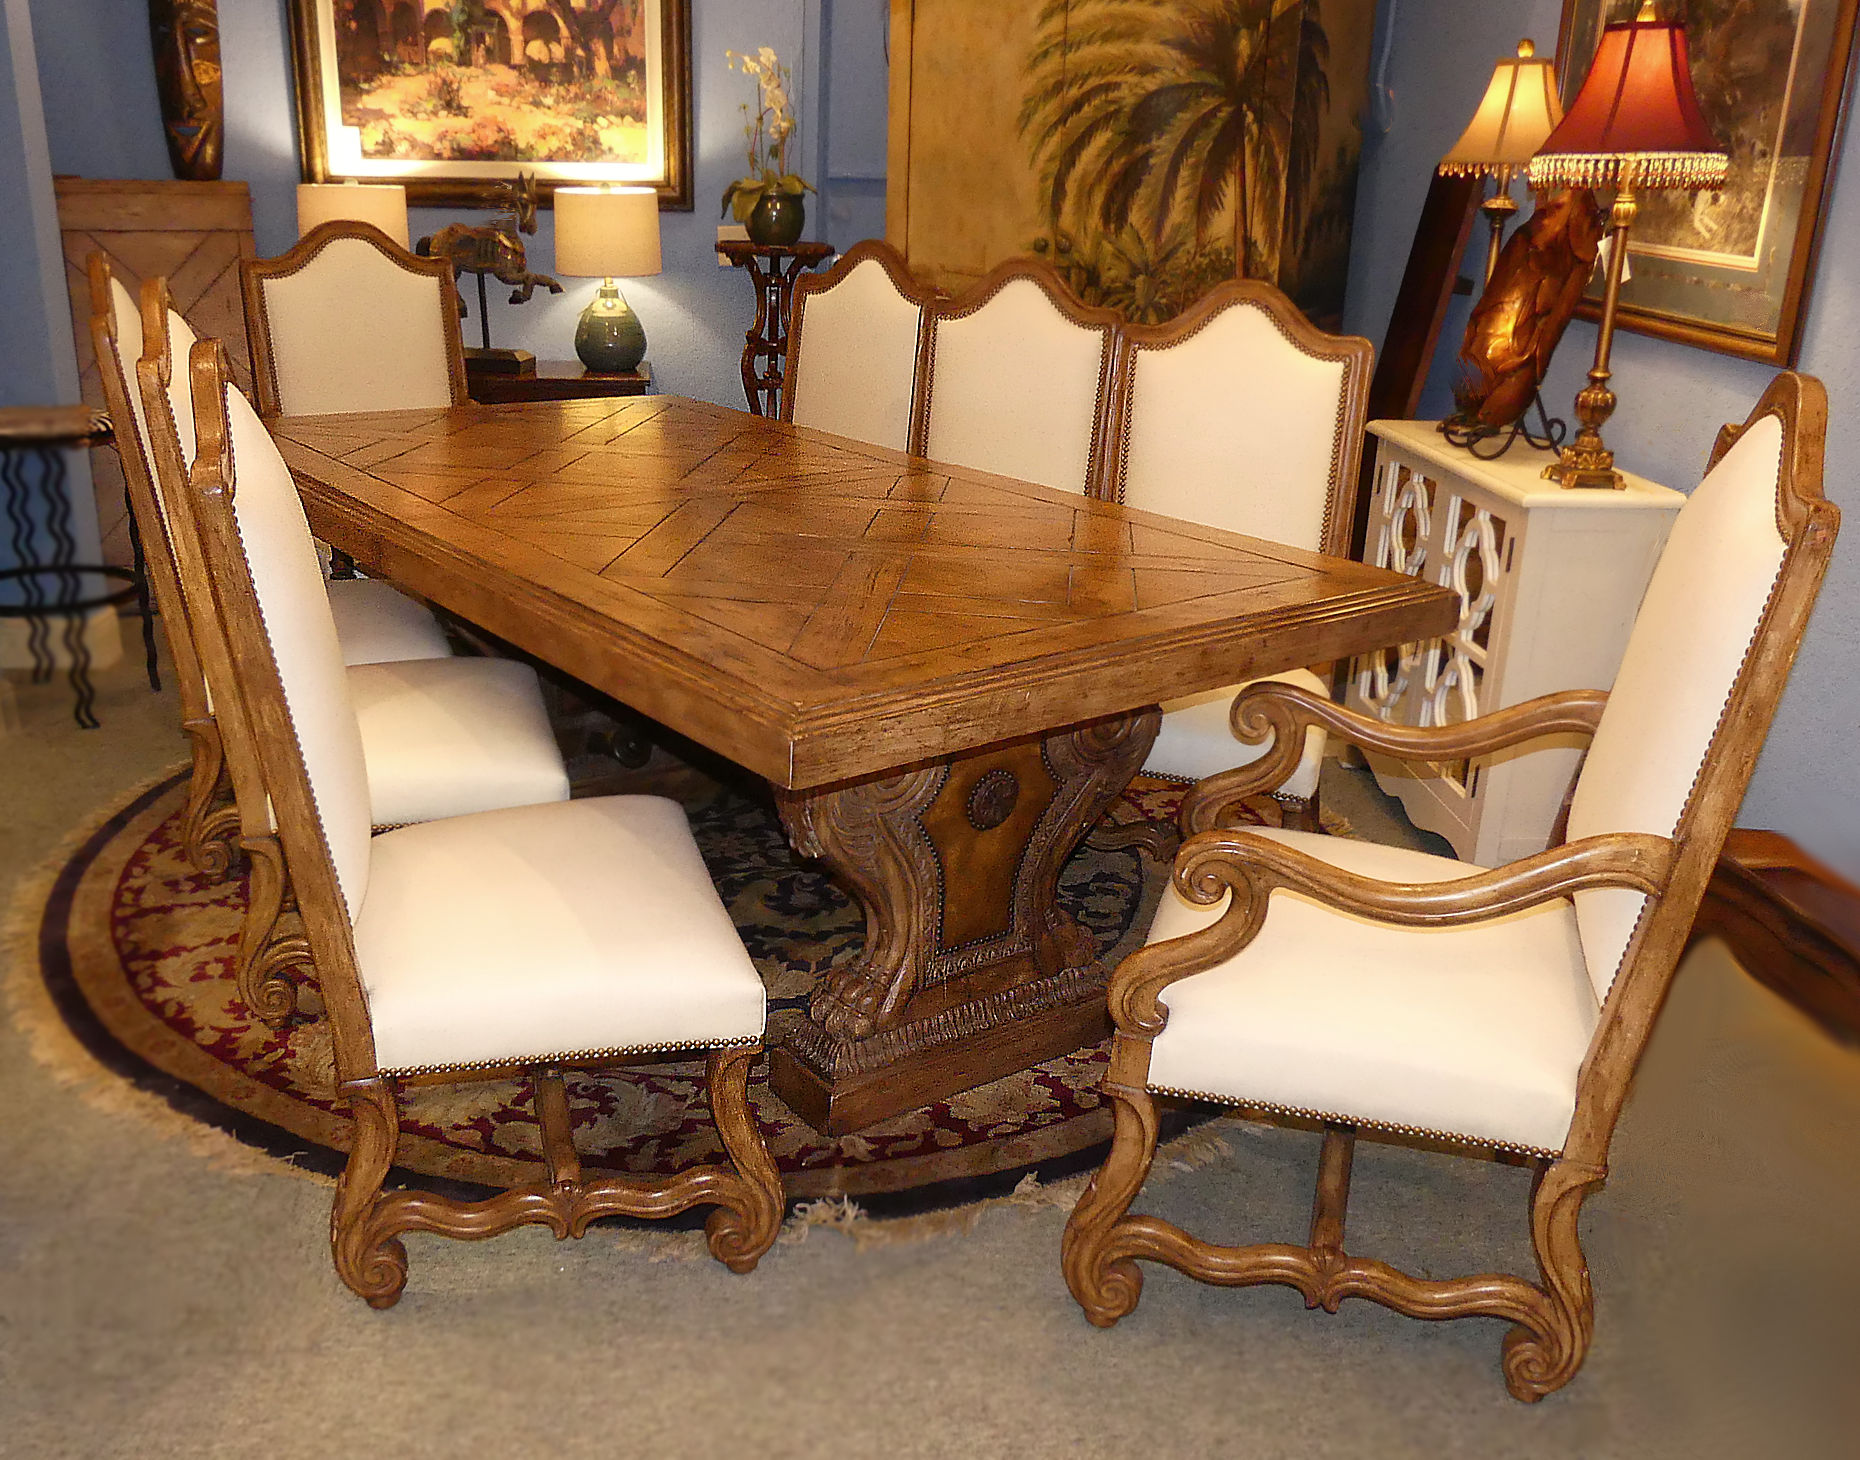 SOLD Ferguson Copeland Highlands Dining Room Set Trestle Base Table plus 8 Off White Linen Chairs